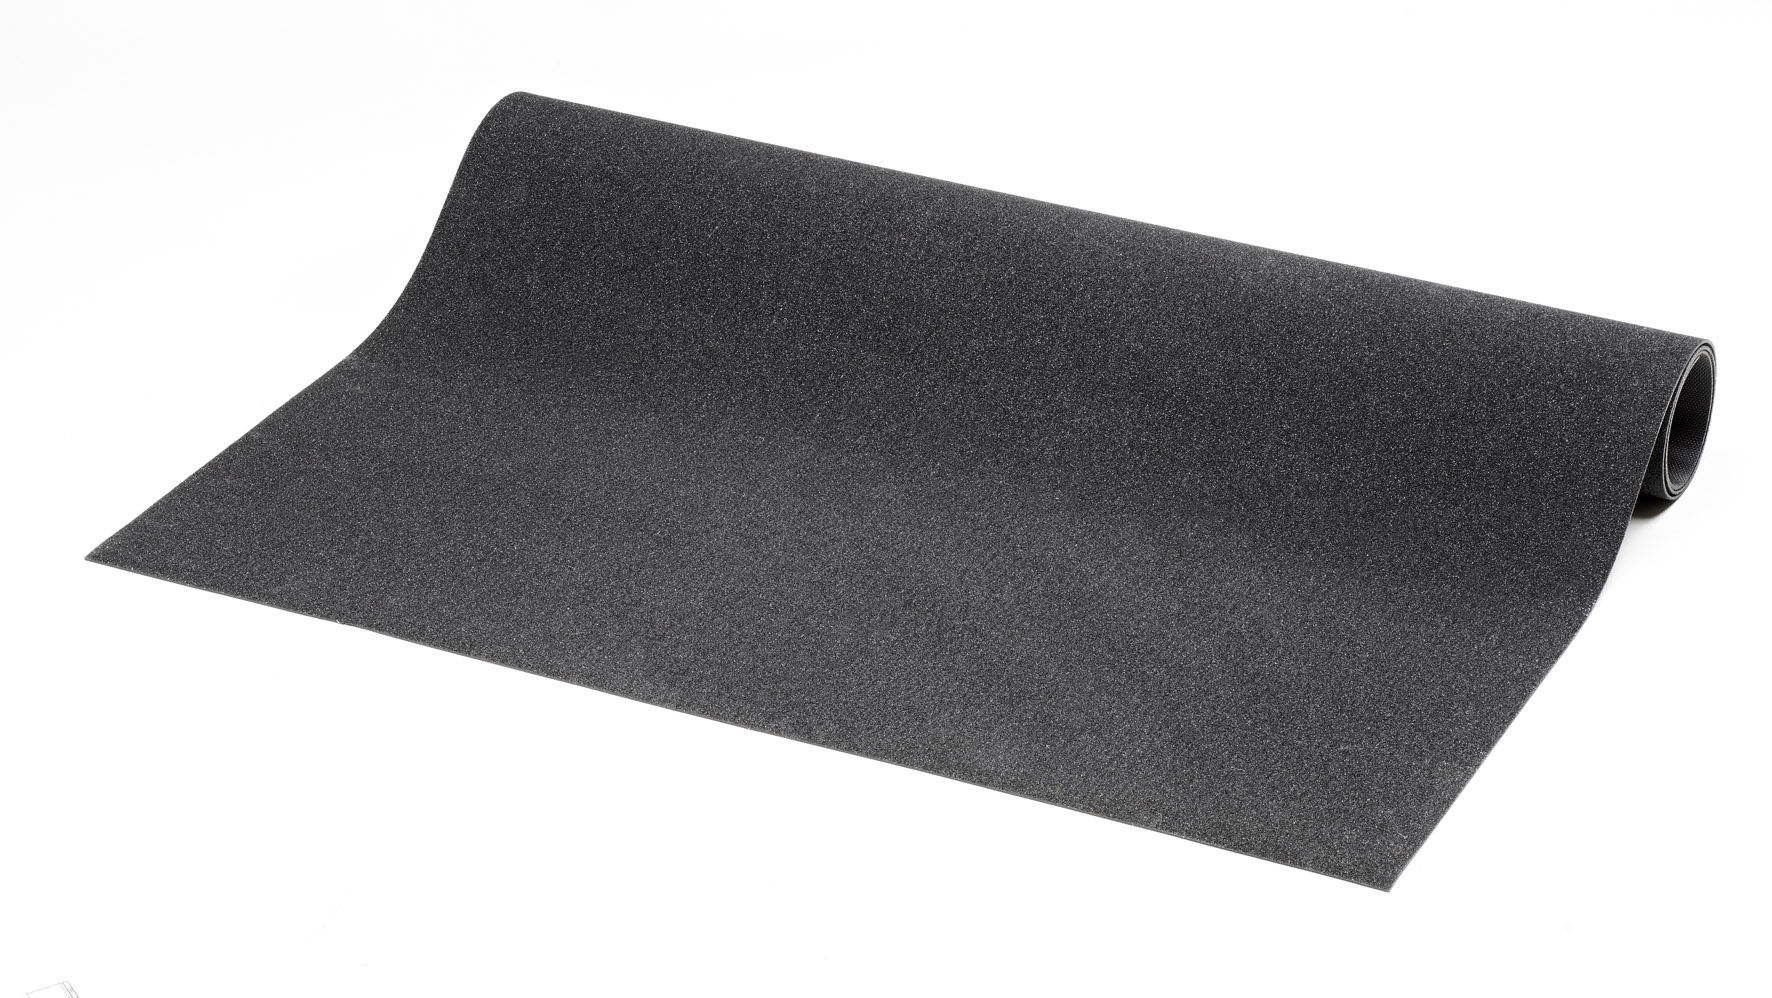 tapis antidrapant en silicone pour zone humide - Tapis Antiderapant